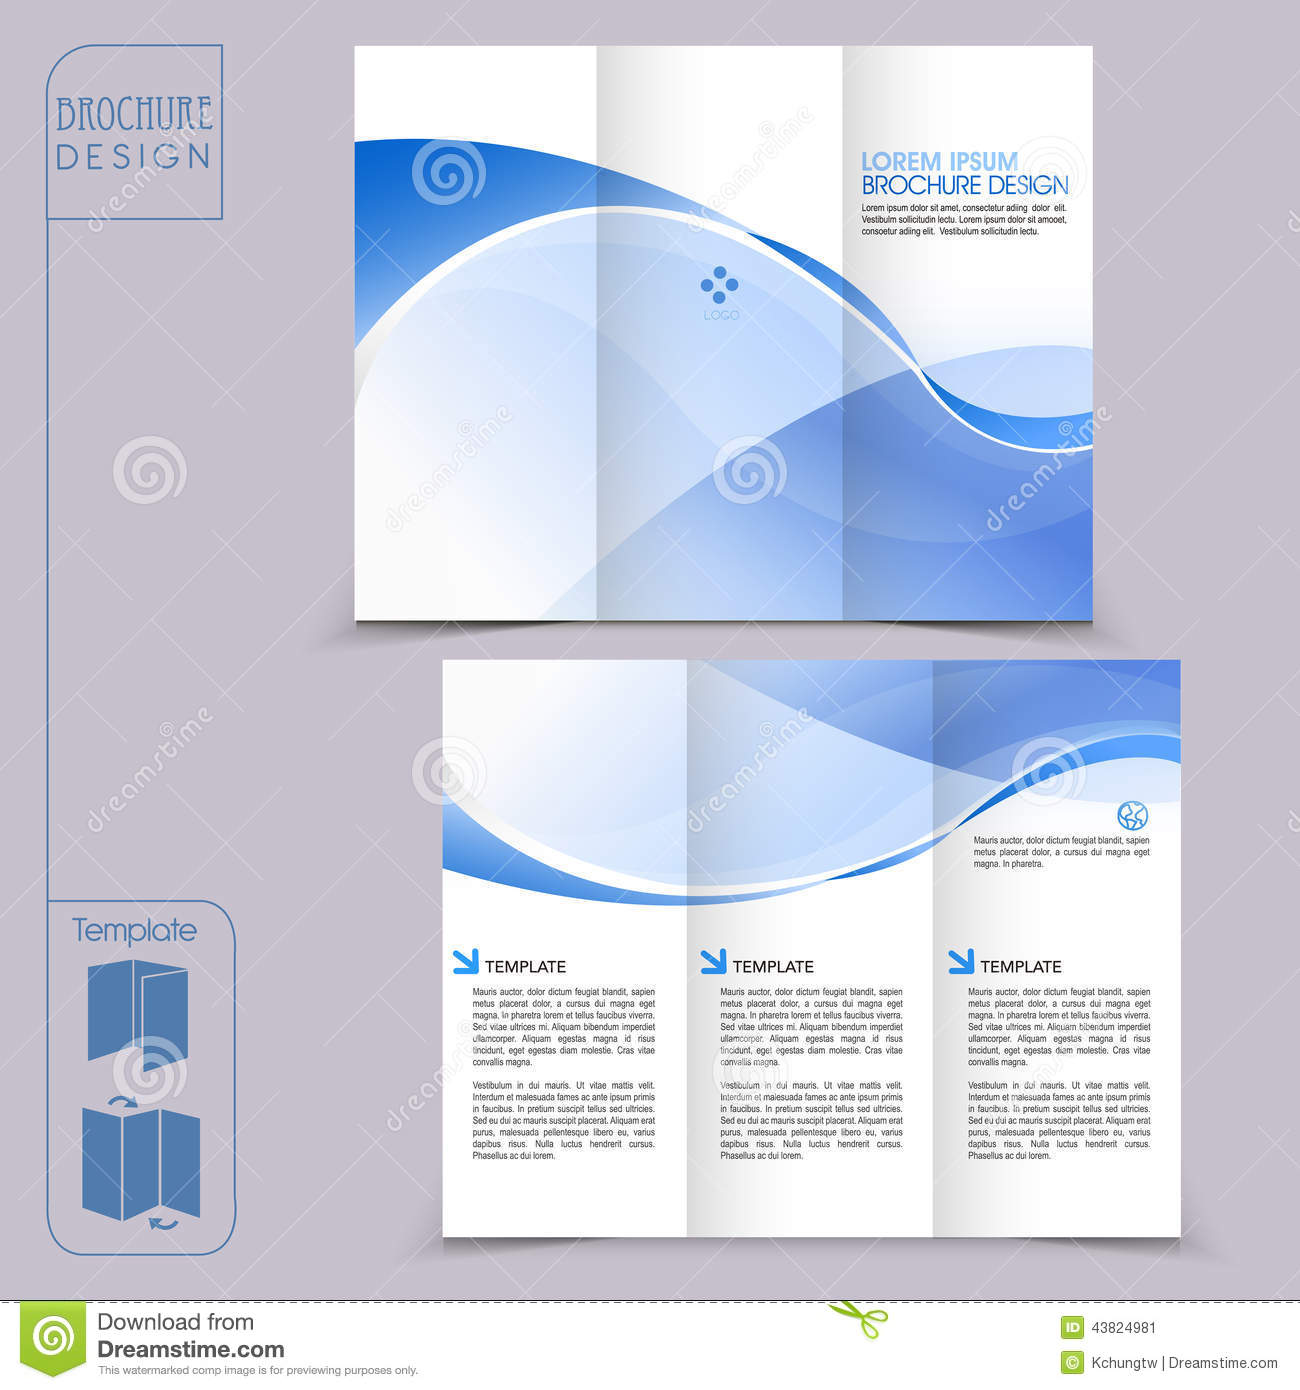 tri fold brochure indesign template - tri fold blue template for business advertising brochure